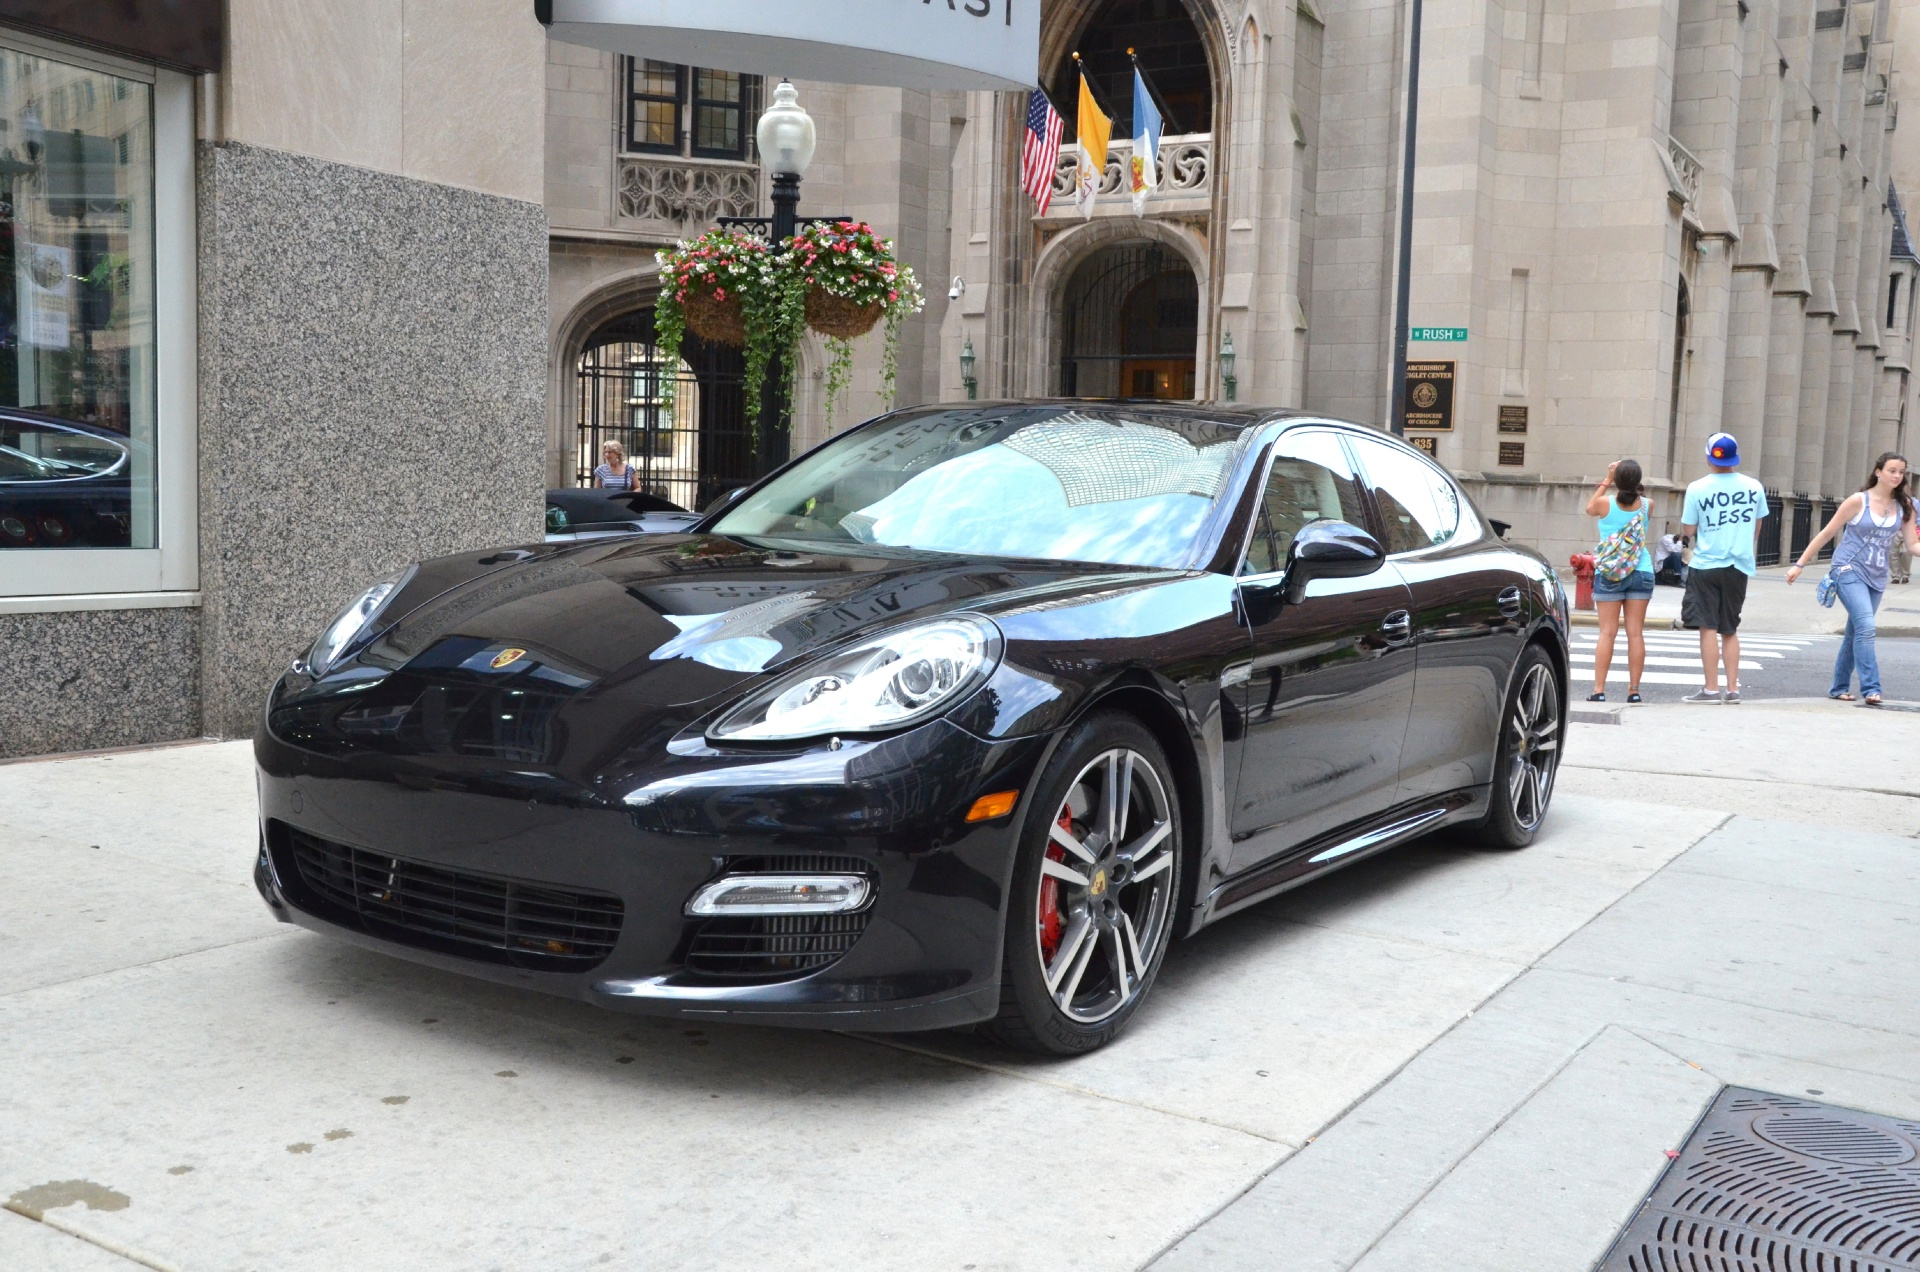 2012 porsche panamera turbo s stock gc1190 for sale near chicago il il porsche dealer. Black Bedroom Furniture Sets. Home Design Ideas